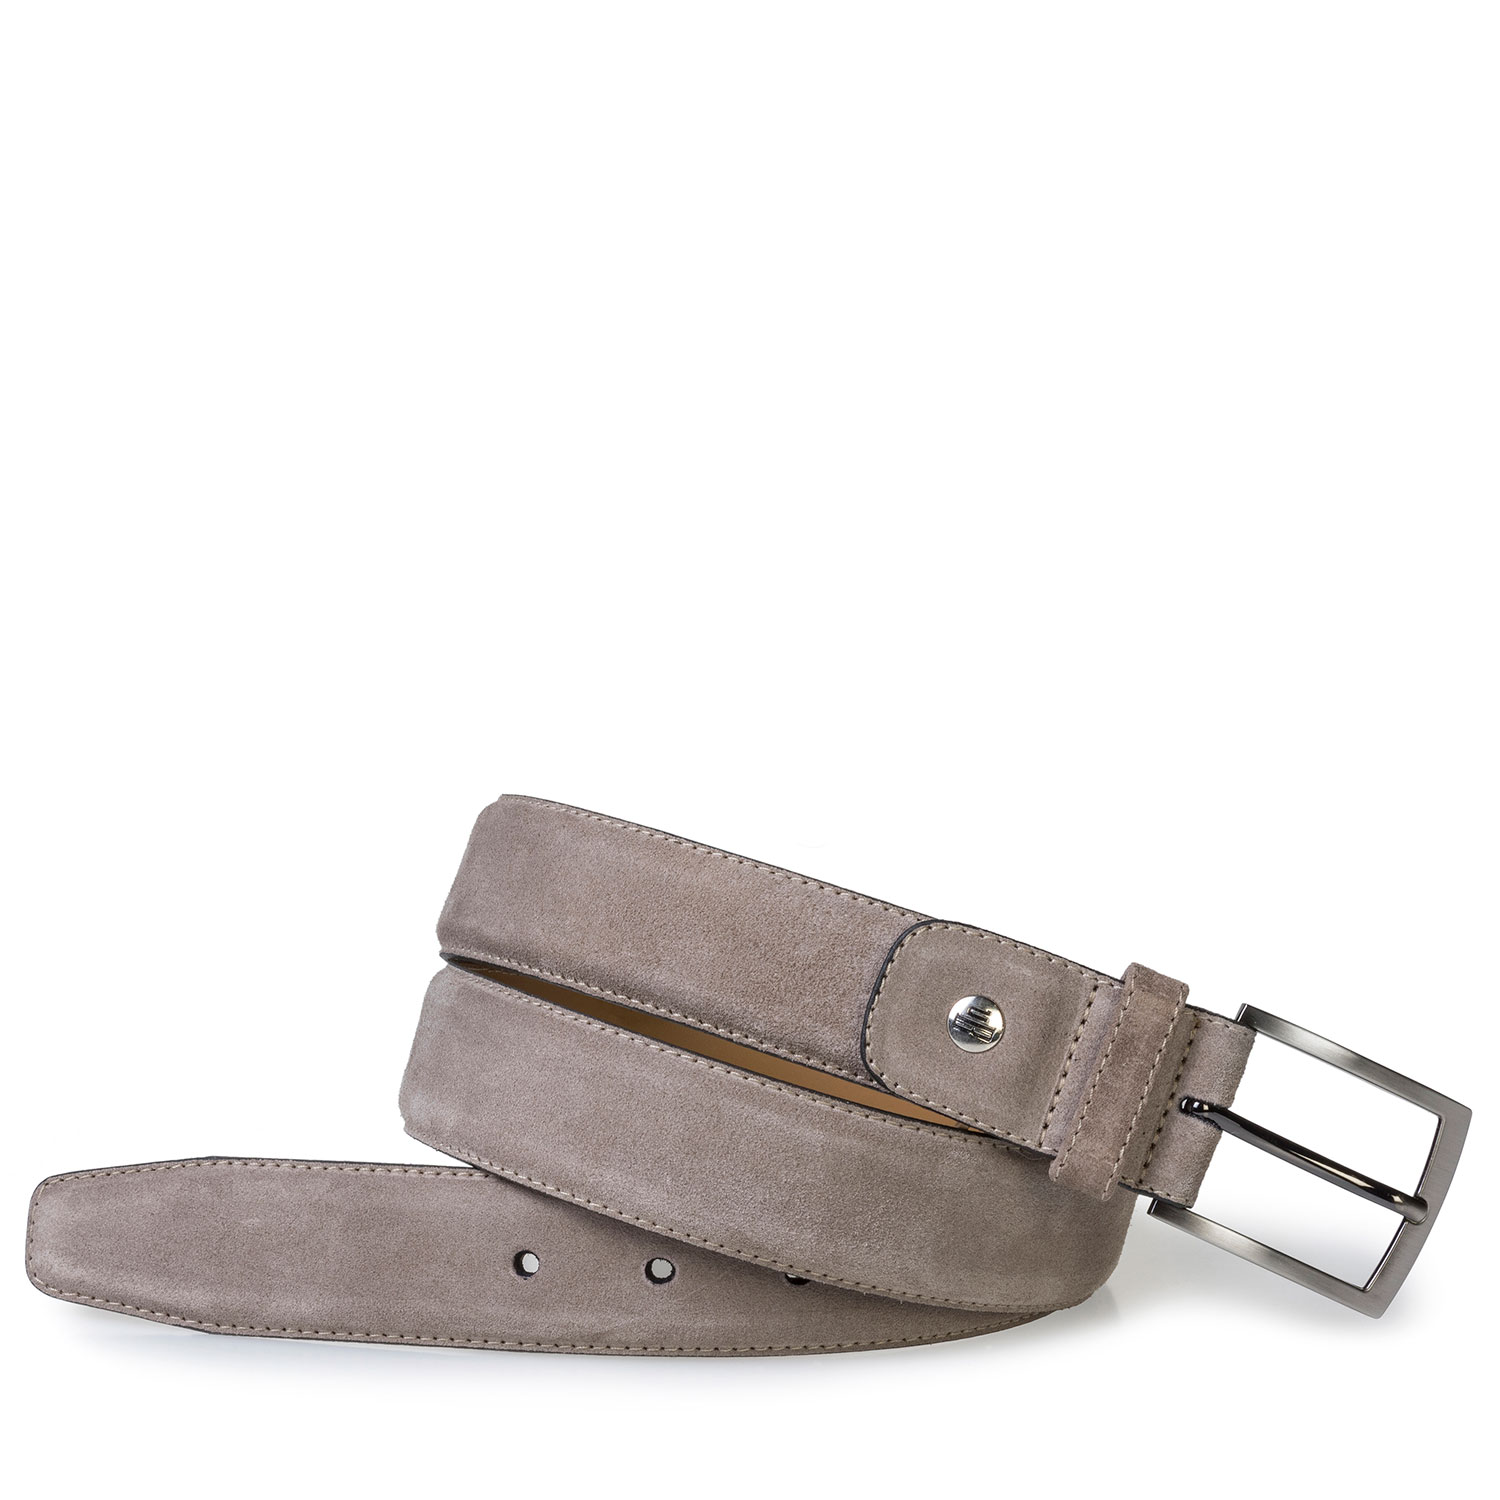 75076/38 - Taupe-coloured suede belt